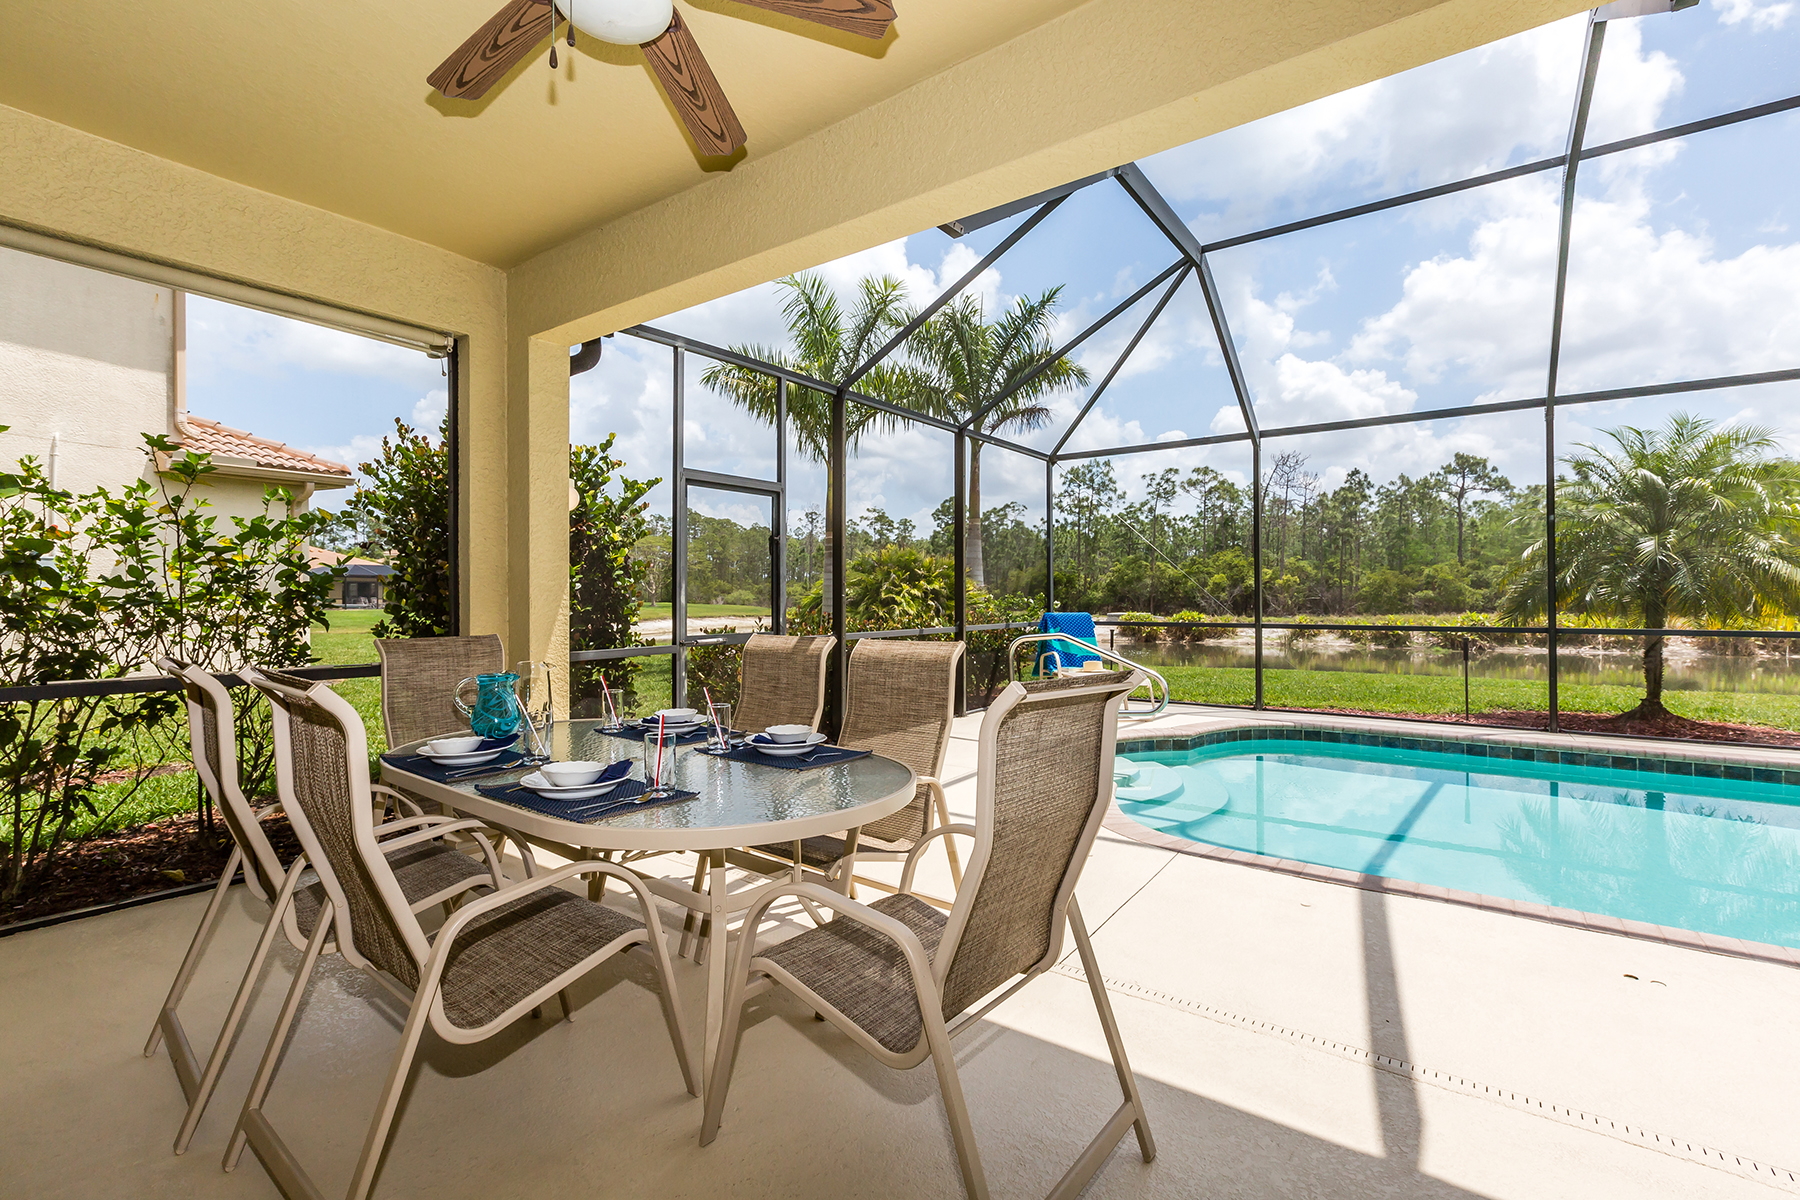 Additional photo for property listing at BELLA TERRA 20765  Torre Del Lago St,  Estero, Florida 33928 United States